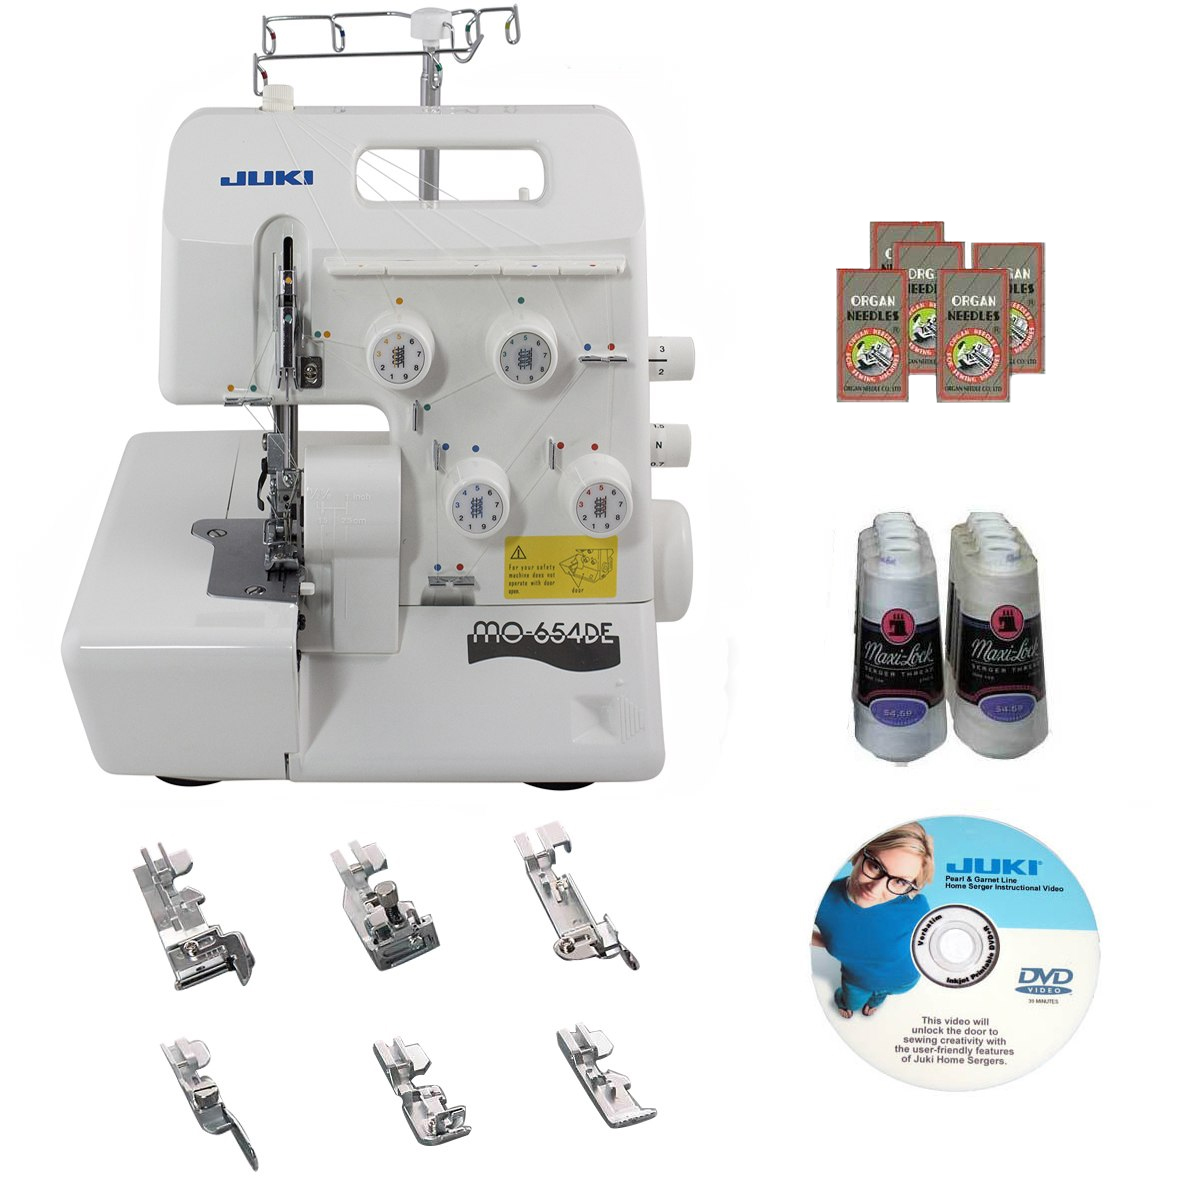 Sewing Machine And Serger Combo